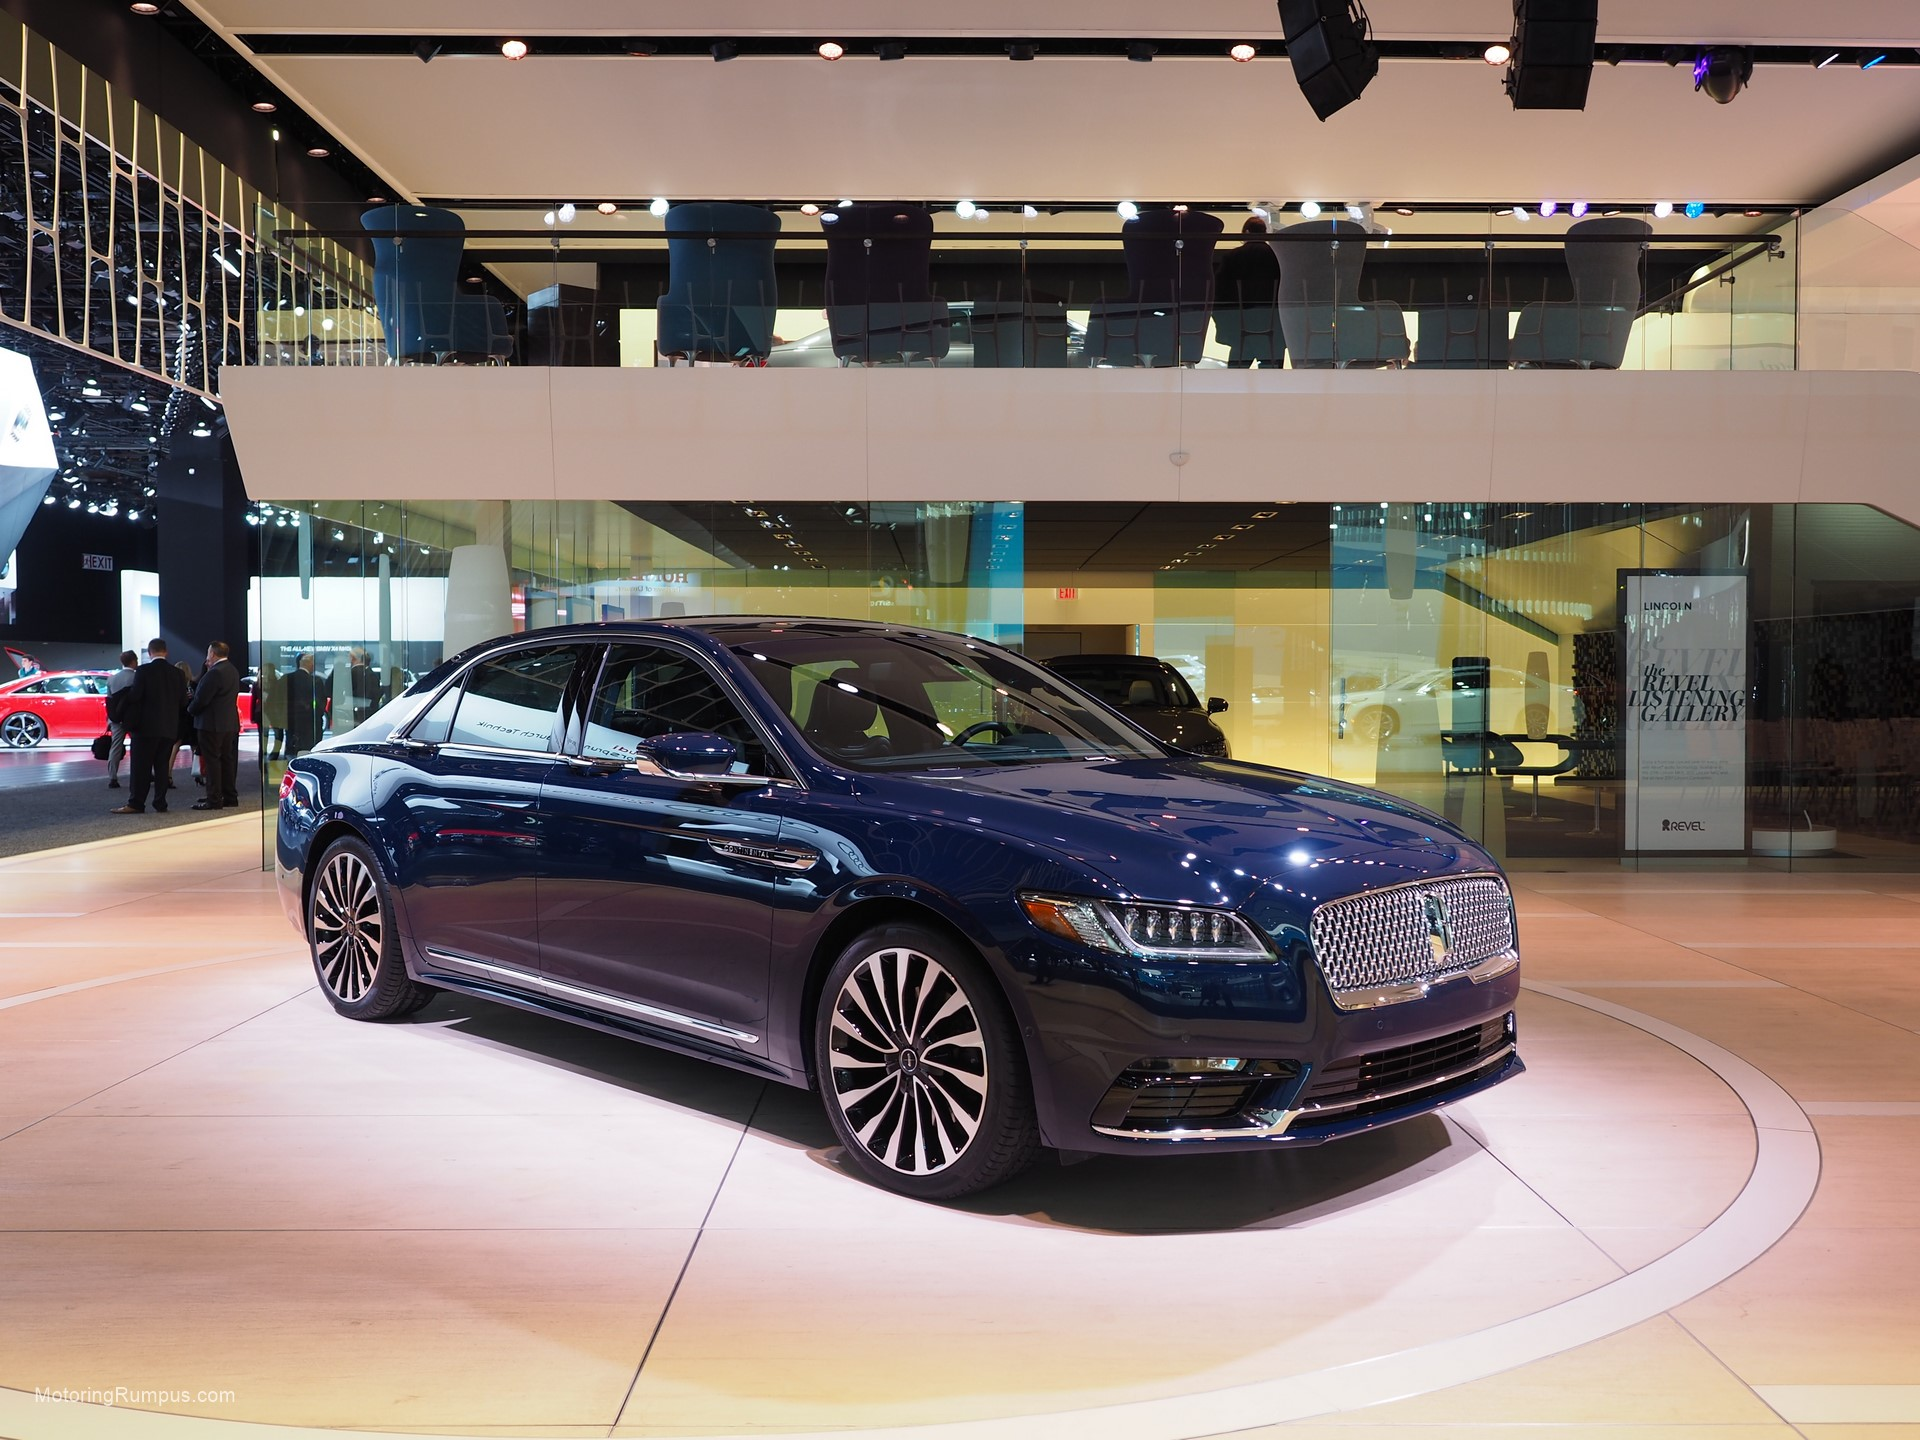 2016 Naias 2017 Lincoln Continental Black Label Motoring